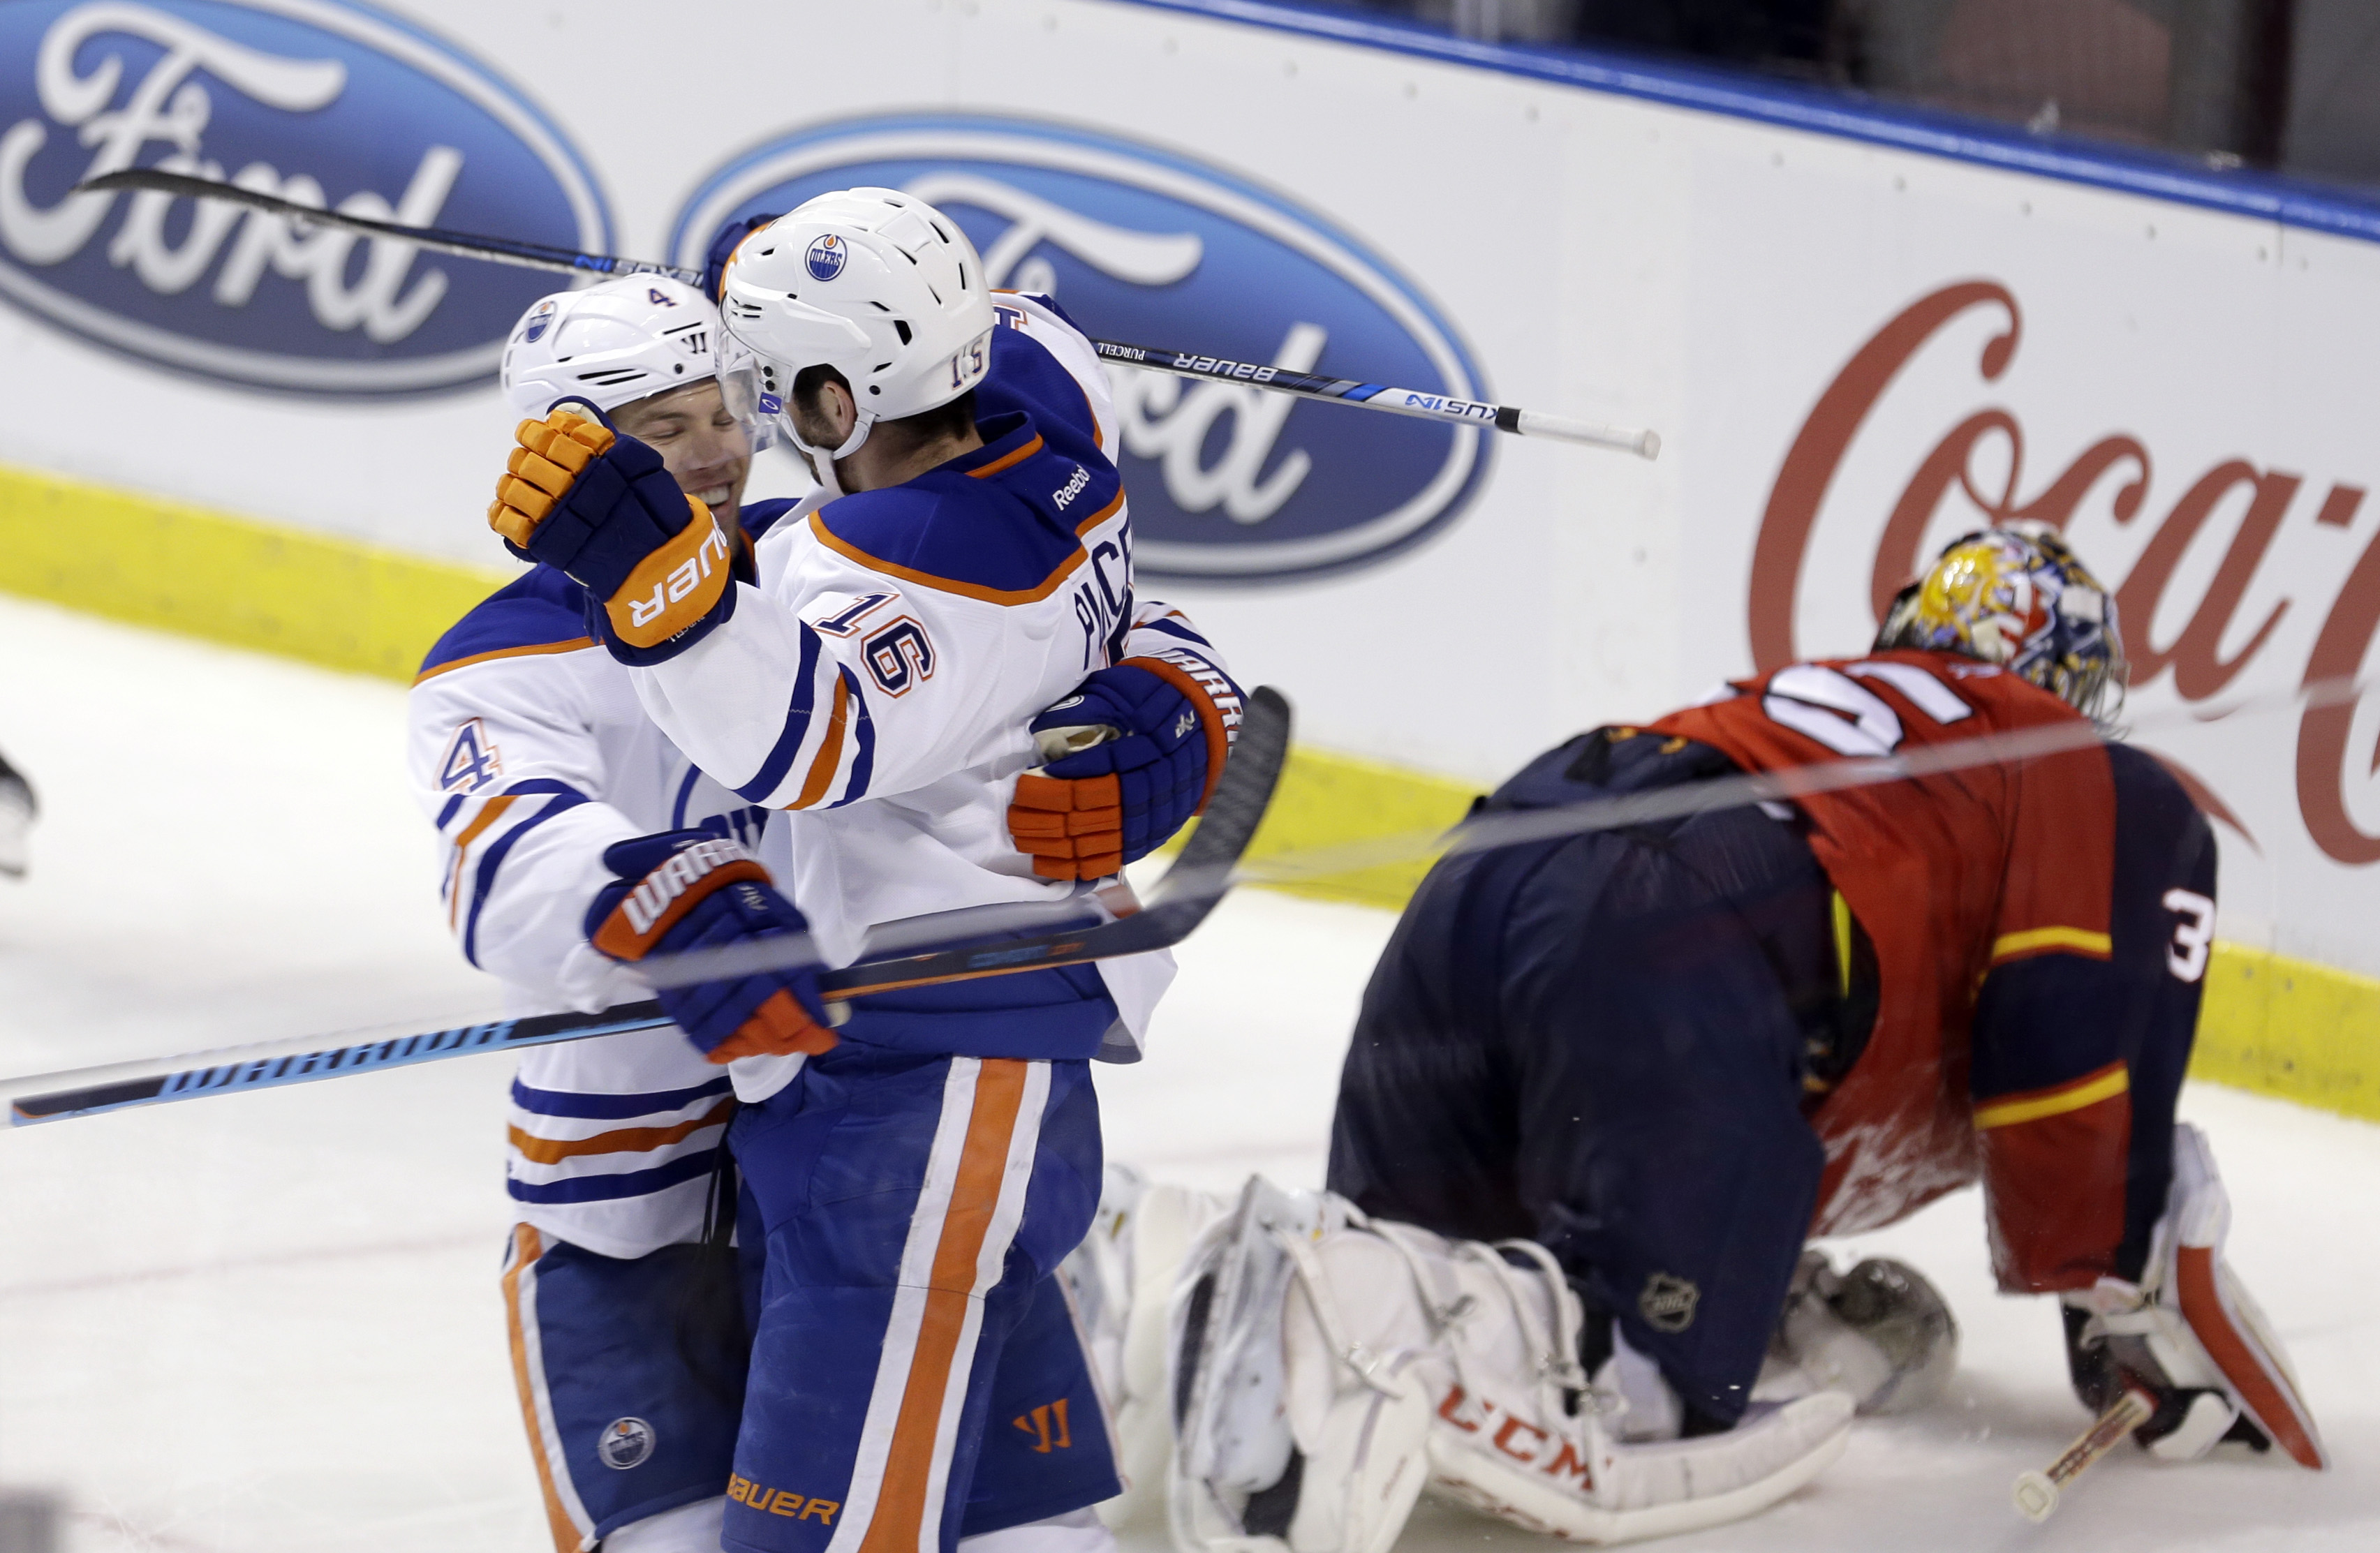 Edmonton Oilers left wing Taylor Hall (4) congratulates teammate Teddy Purcell (16) after Purcell scored against the Florida Panthers during the third period of an NHL hockey game, Monday, Jan. 18, 2016, in Sunrise, Fla. The Oilers won 4-2. (AP Photo/Alan